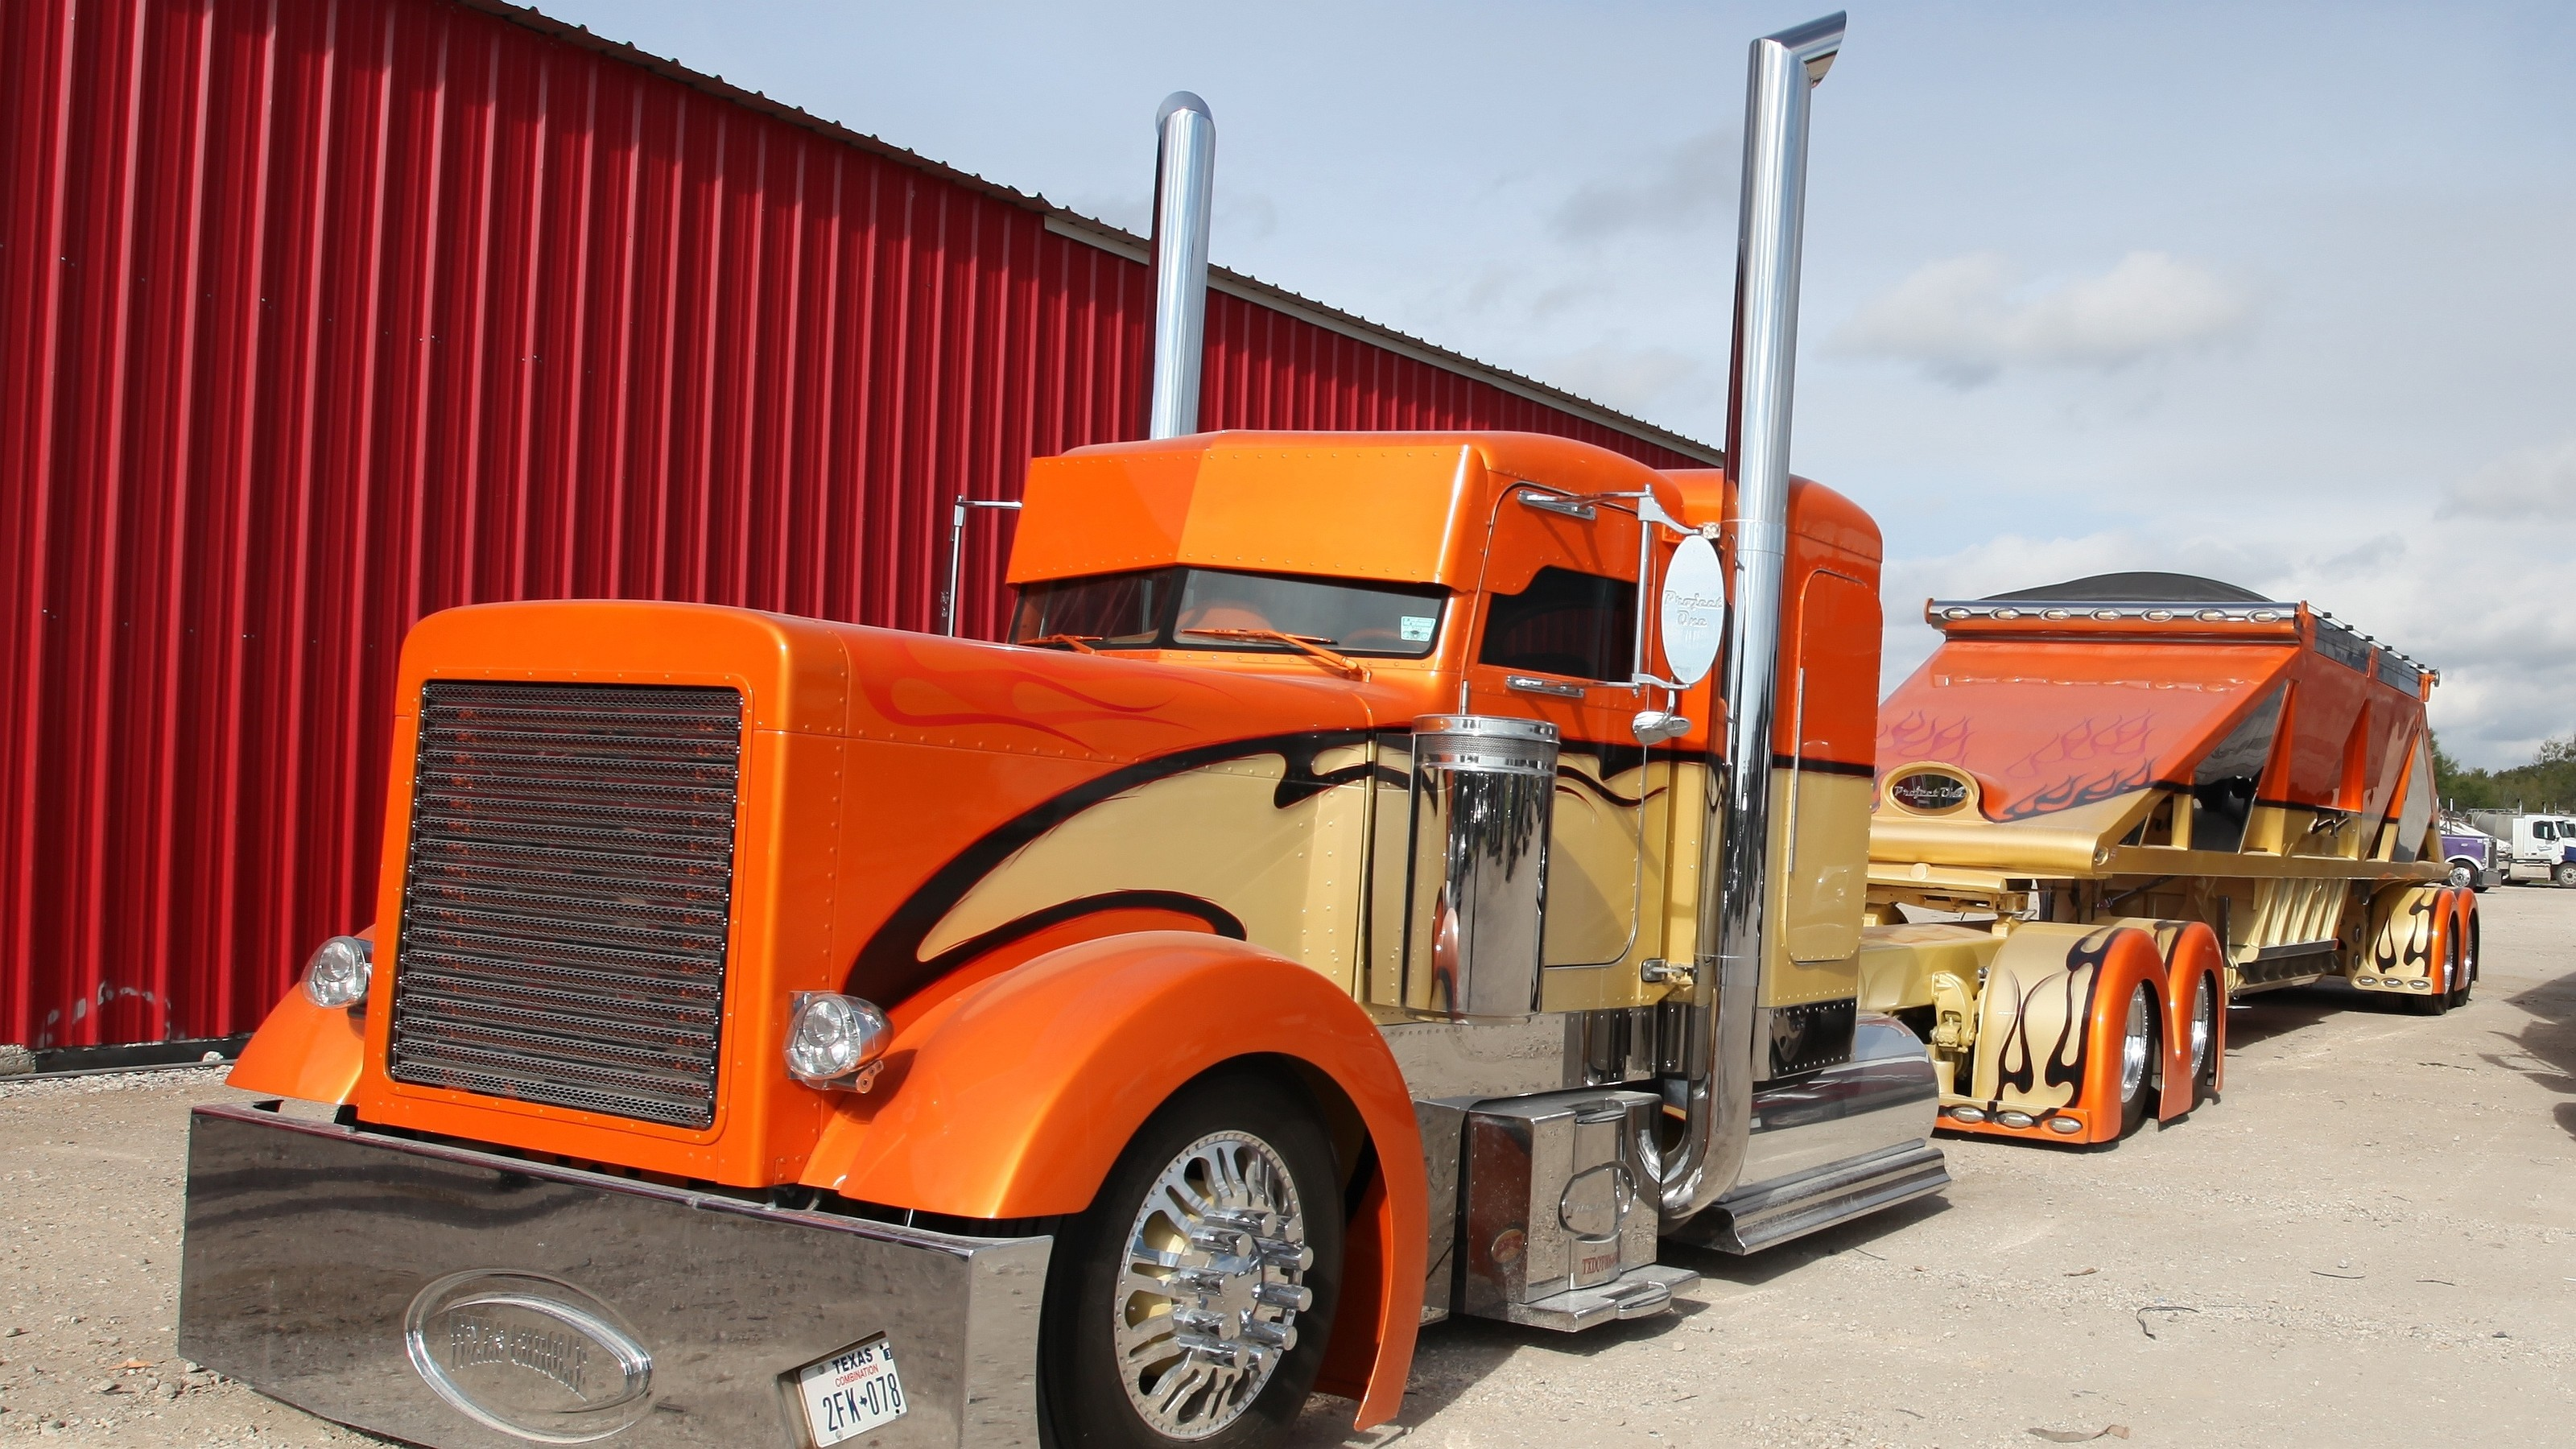 3200x1800 Peterbilt HD Wallpaper | Background Image |  | ID:562592 -  Wallpaper Abyss